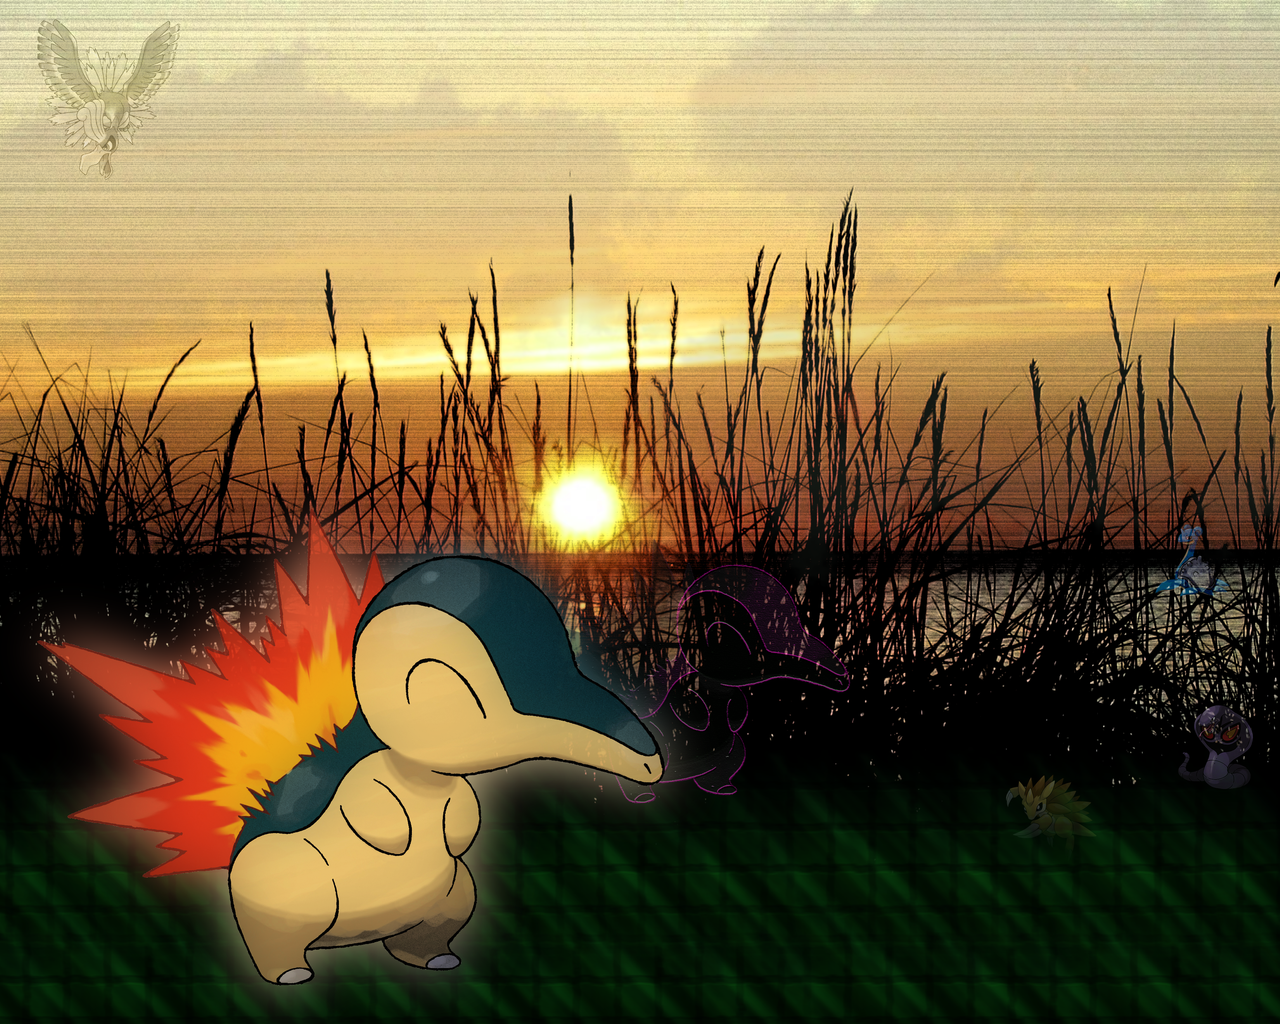 Wallpapers - Poliwager Cyndaquil Wallpaper